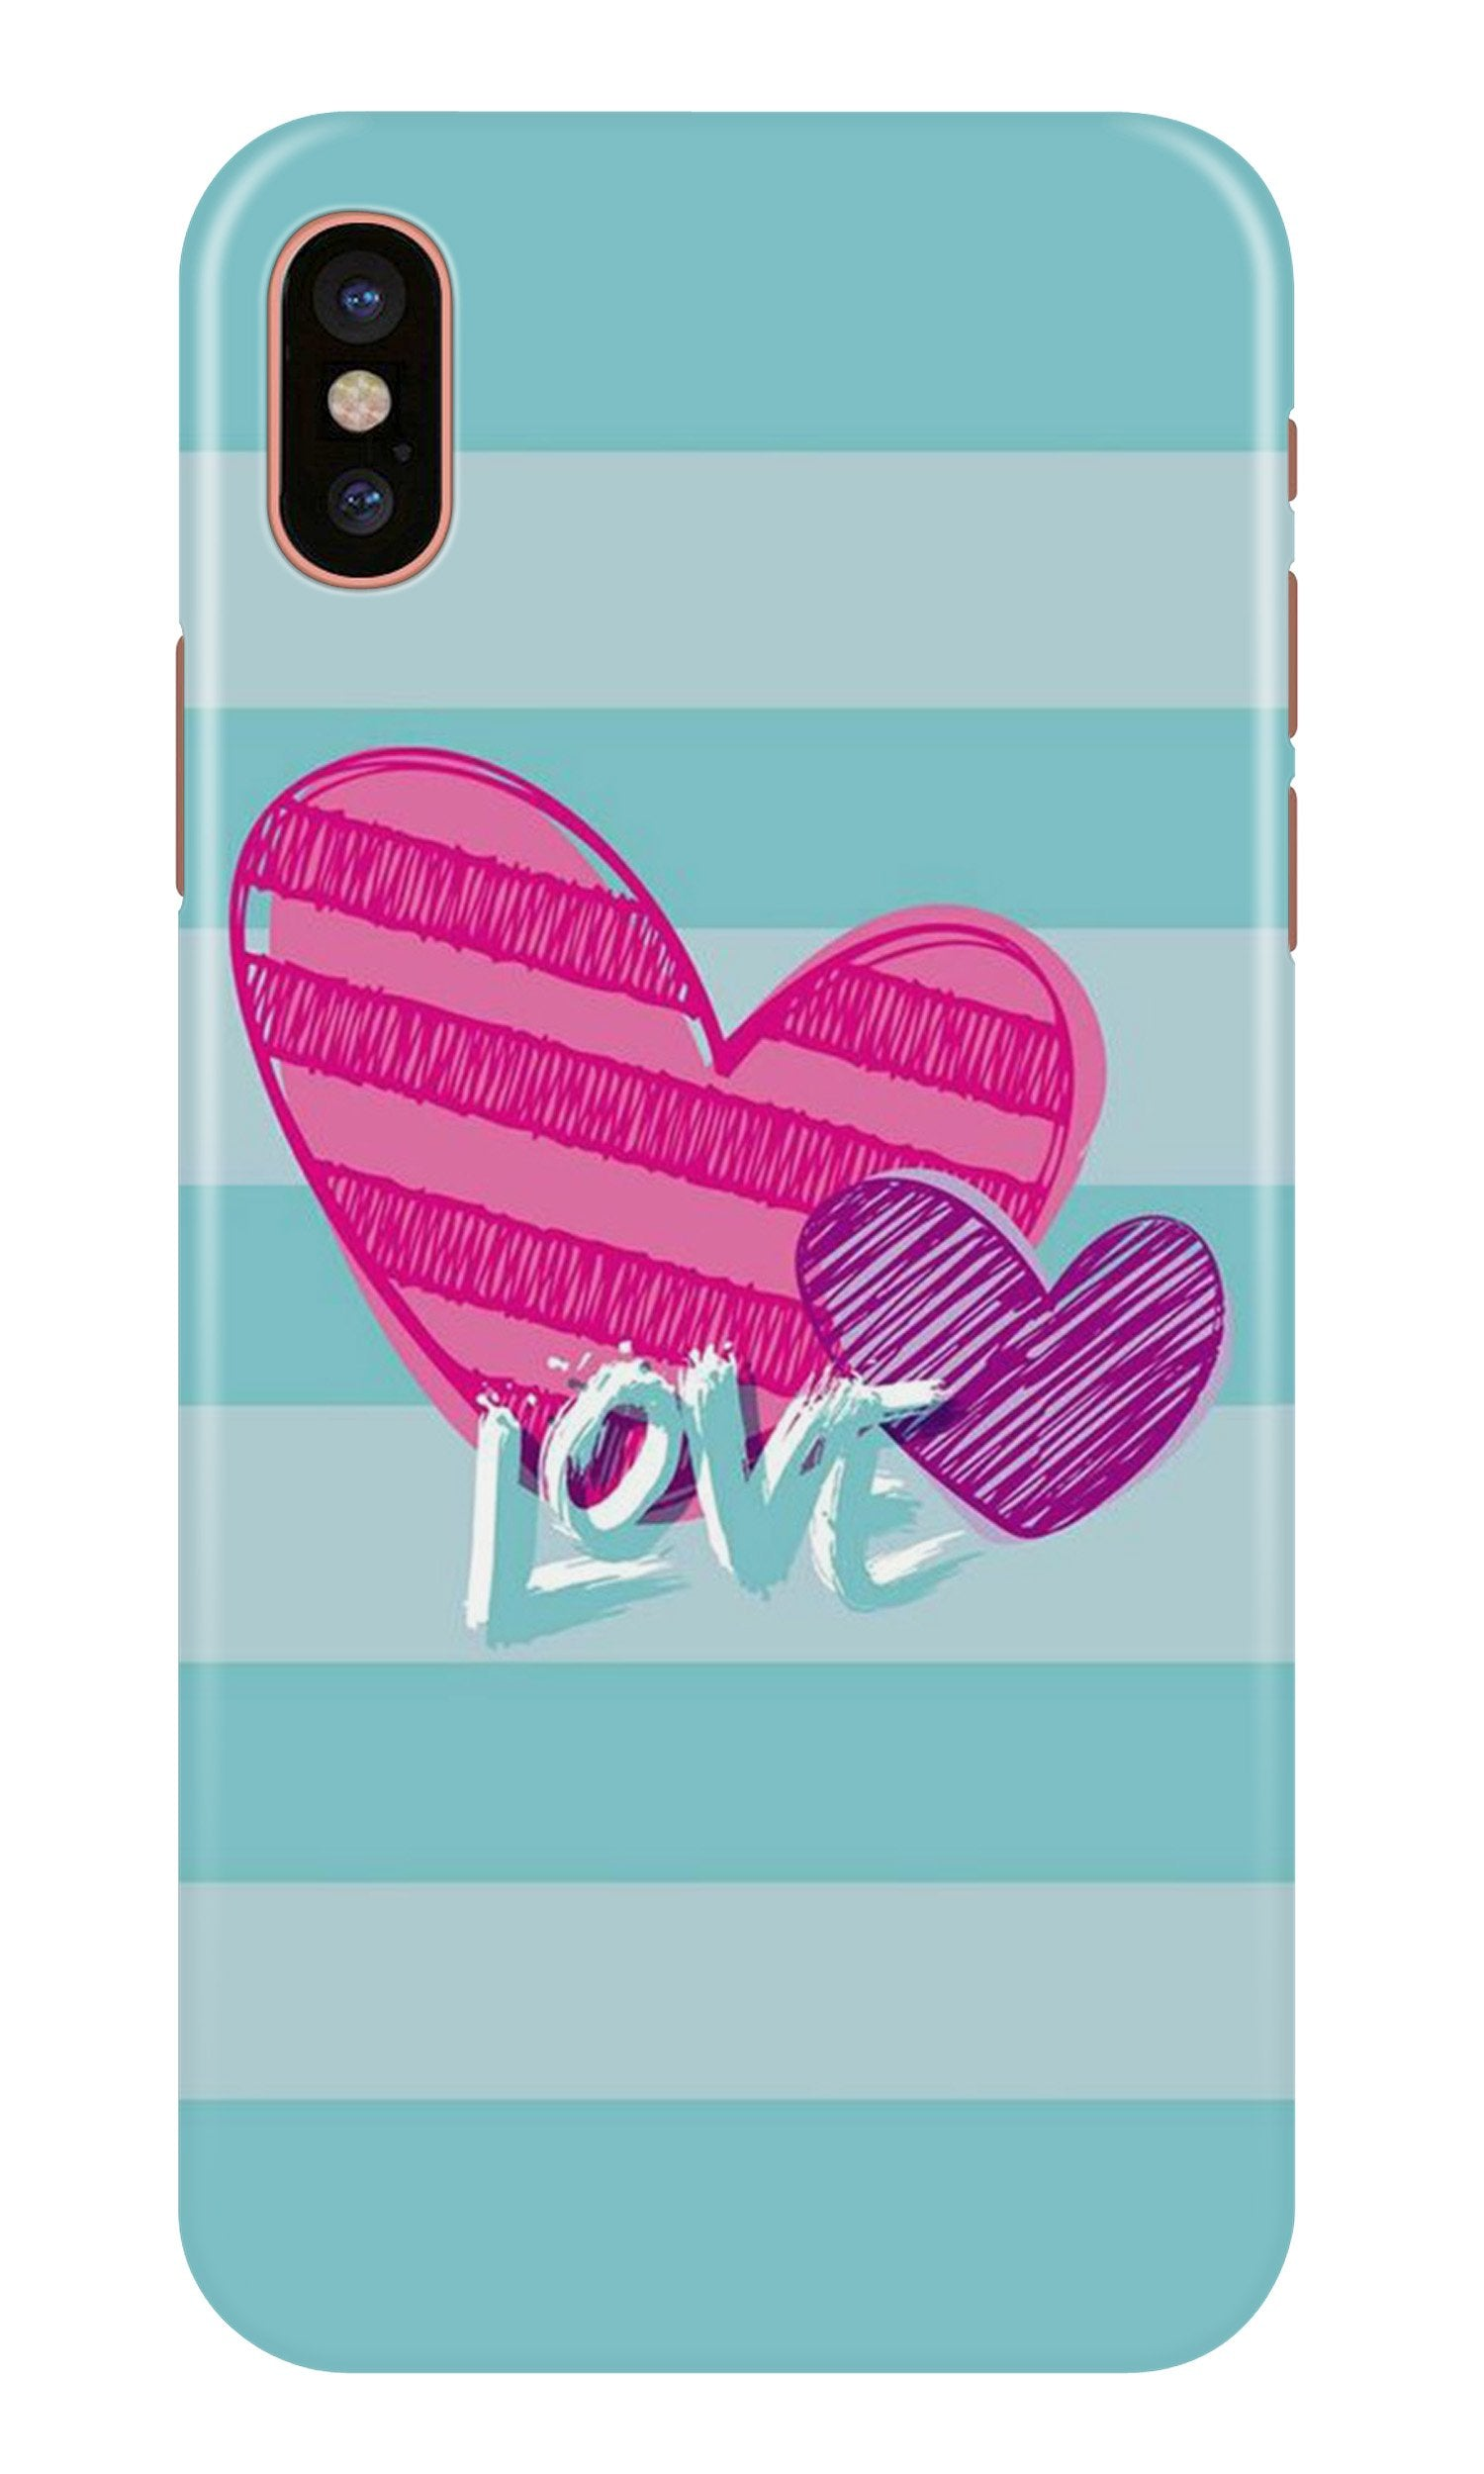 Love Case for iPhone X (Design No. 299)